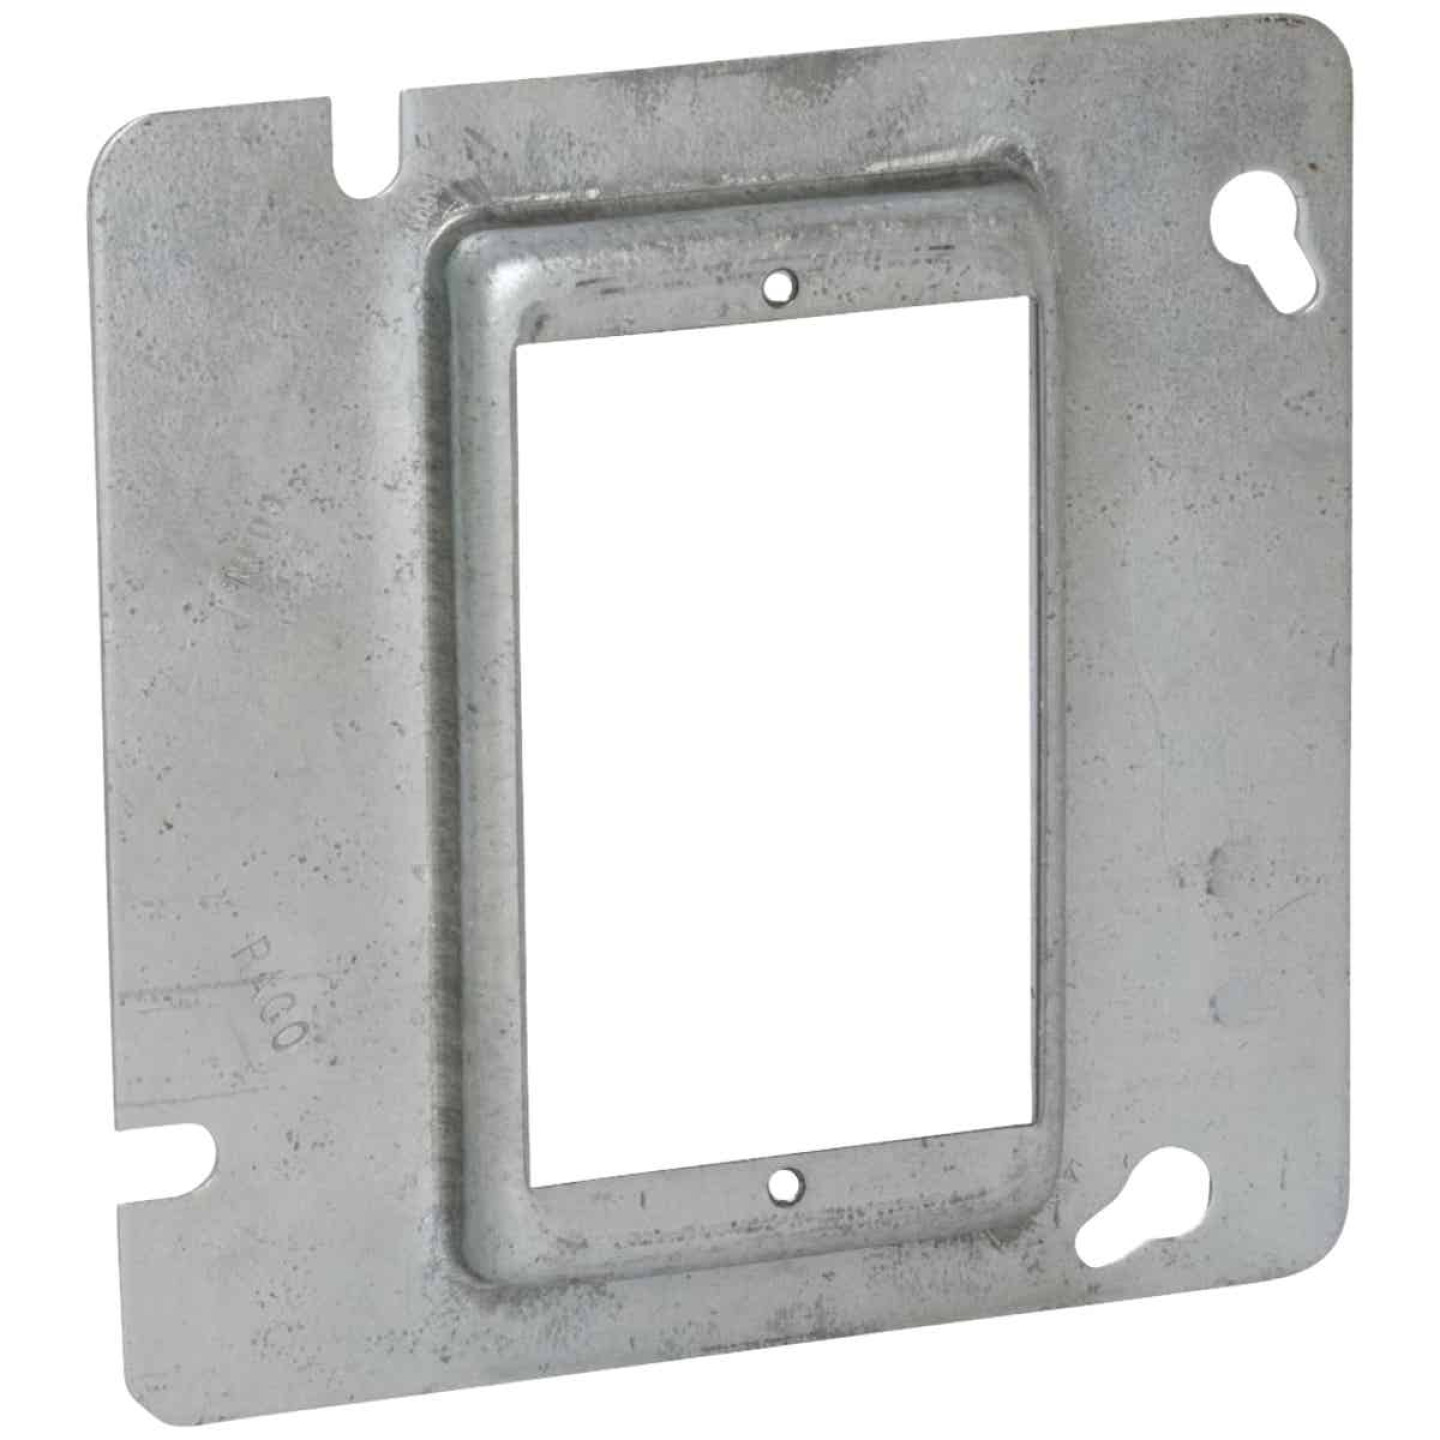 Raco 1-Device Combination 4-11/16 In. x 4-11/16 In. Square Raised Cover Image 1